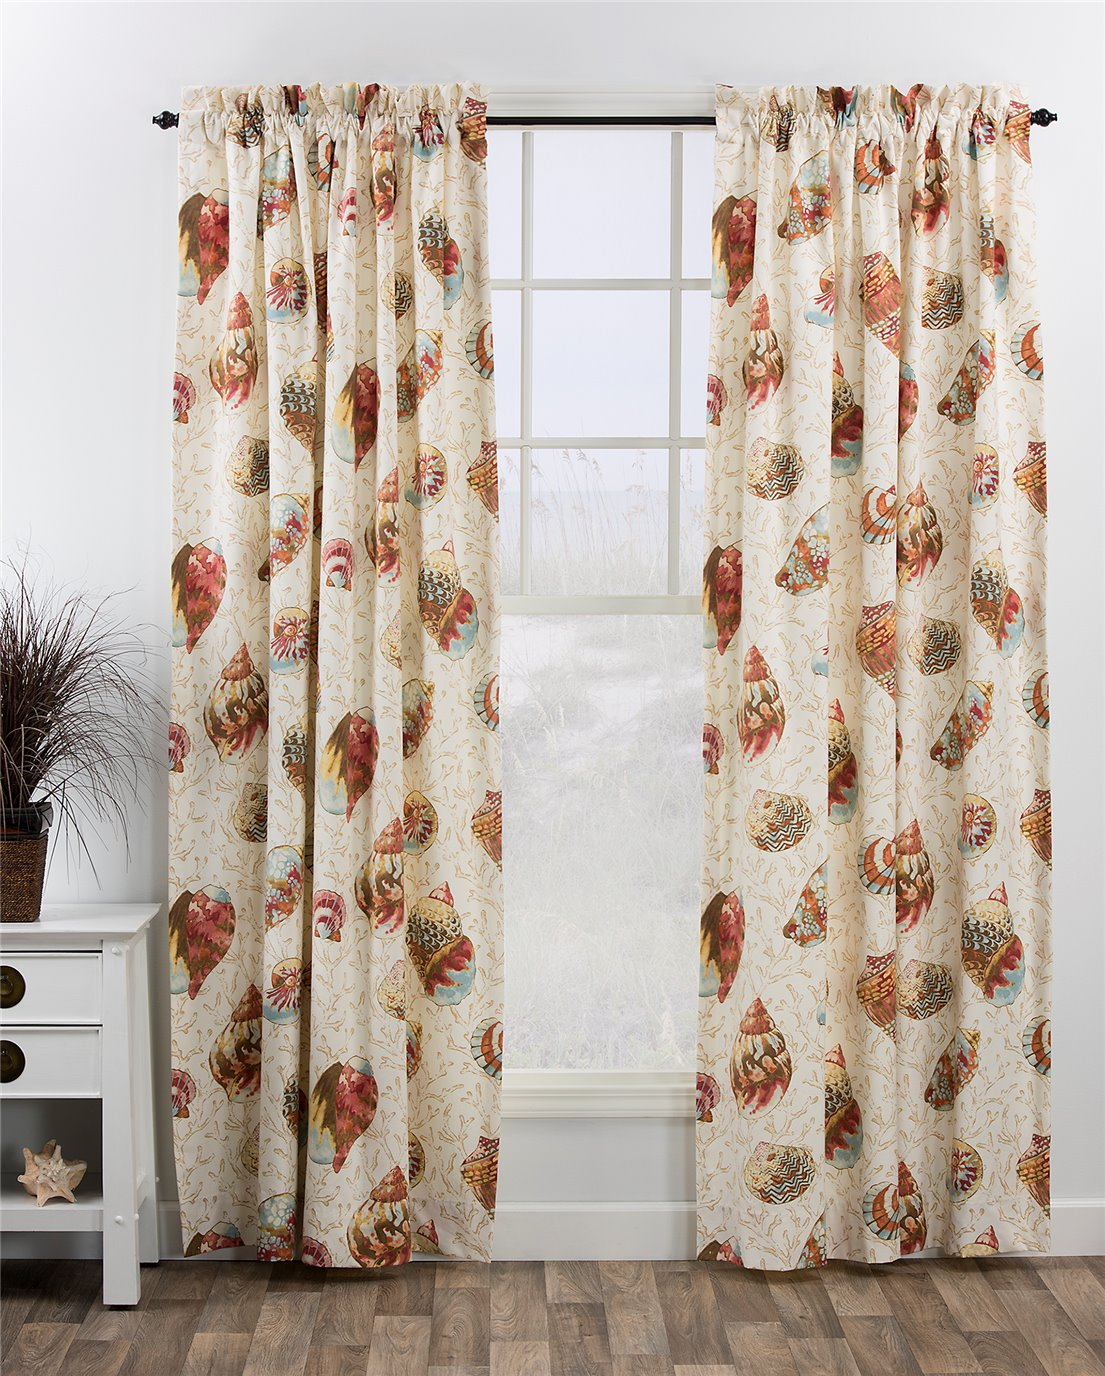 seaside treasures sand 100 x 84 pr rod pocket curtains by thomasville home fashions. Black Bedroom Furniture Sets. Home Design Ideas